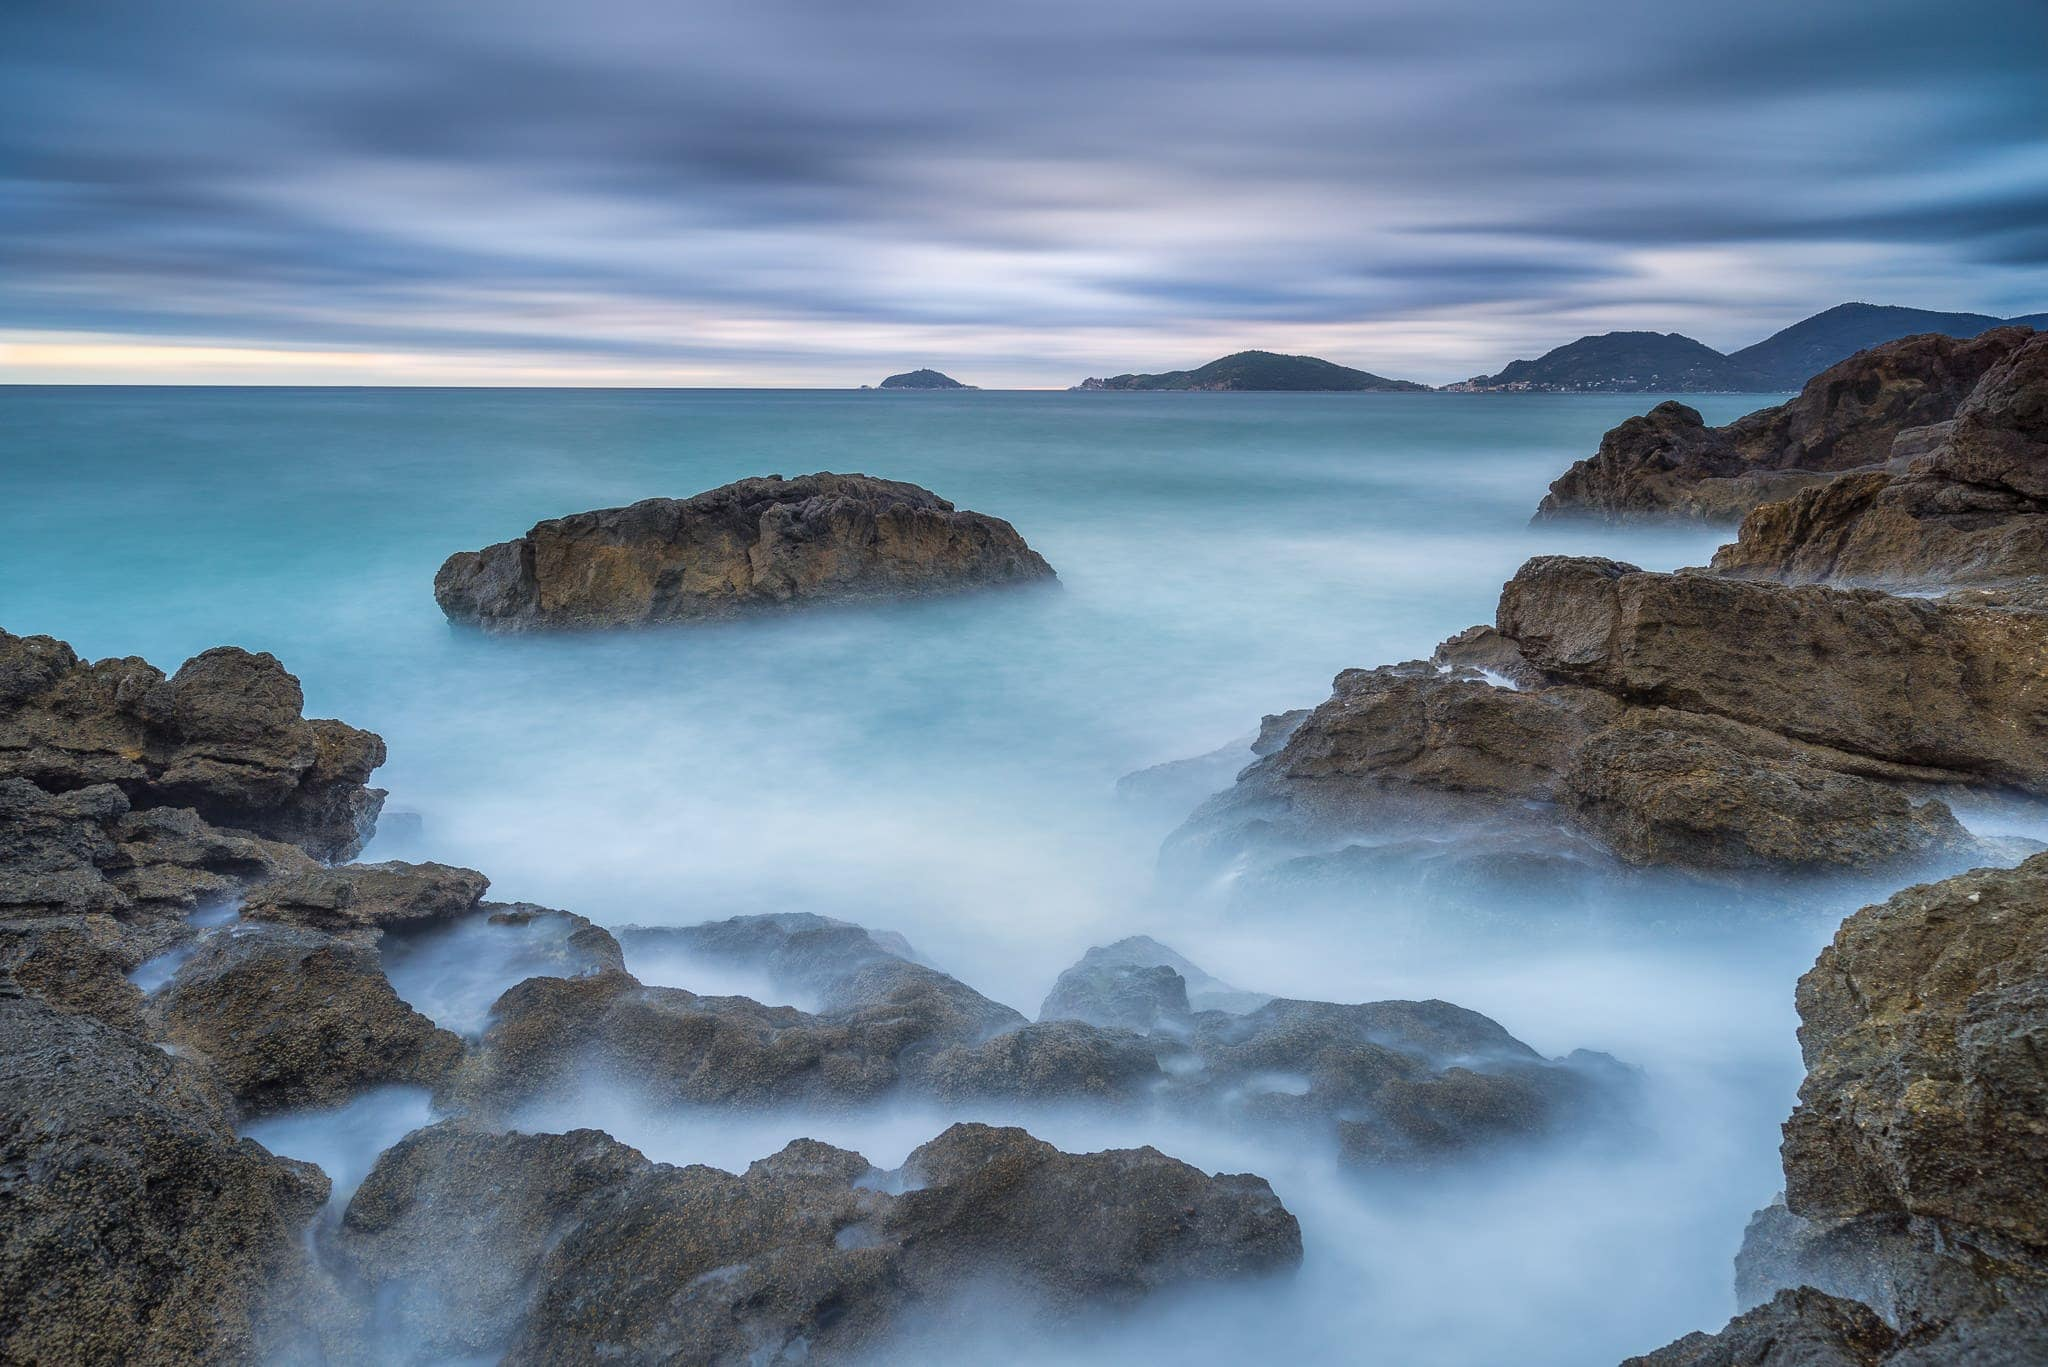 Francesco Gola Seascape Landscape Photography Lerici Storm Gulf Poets Long Exposure